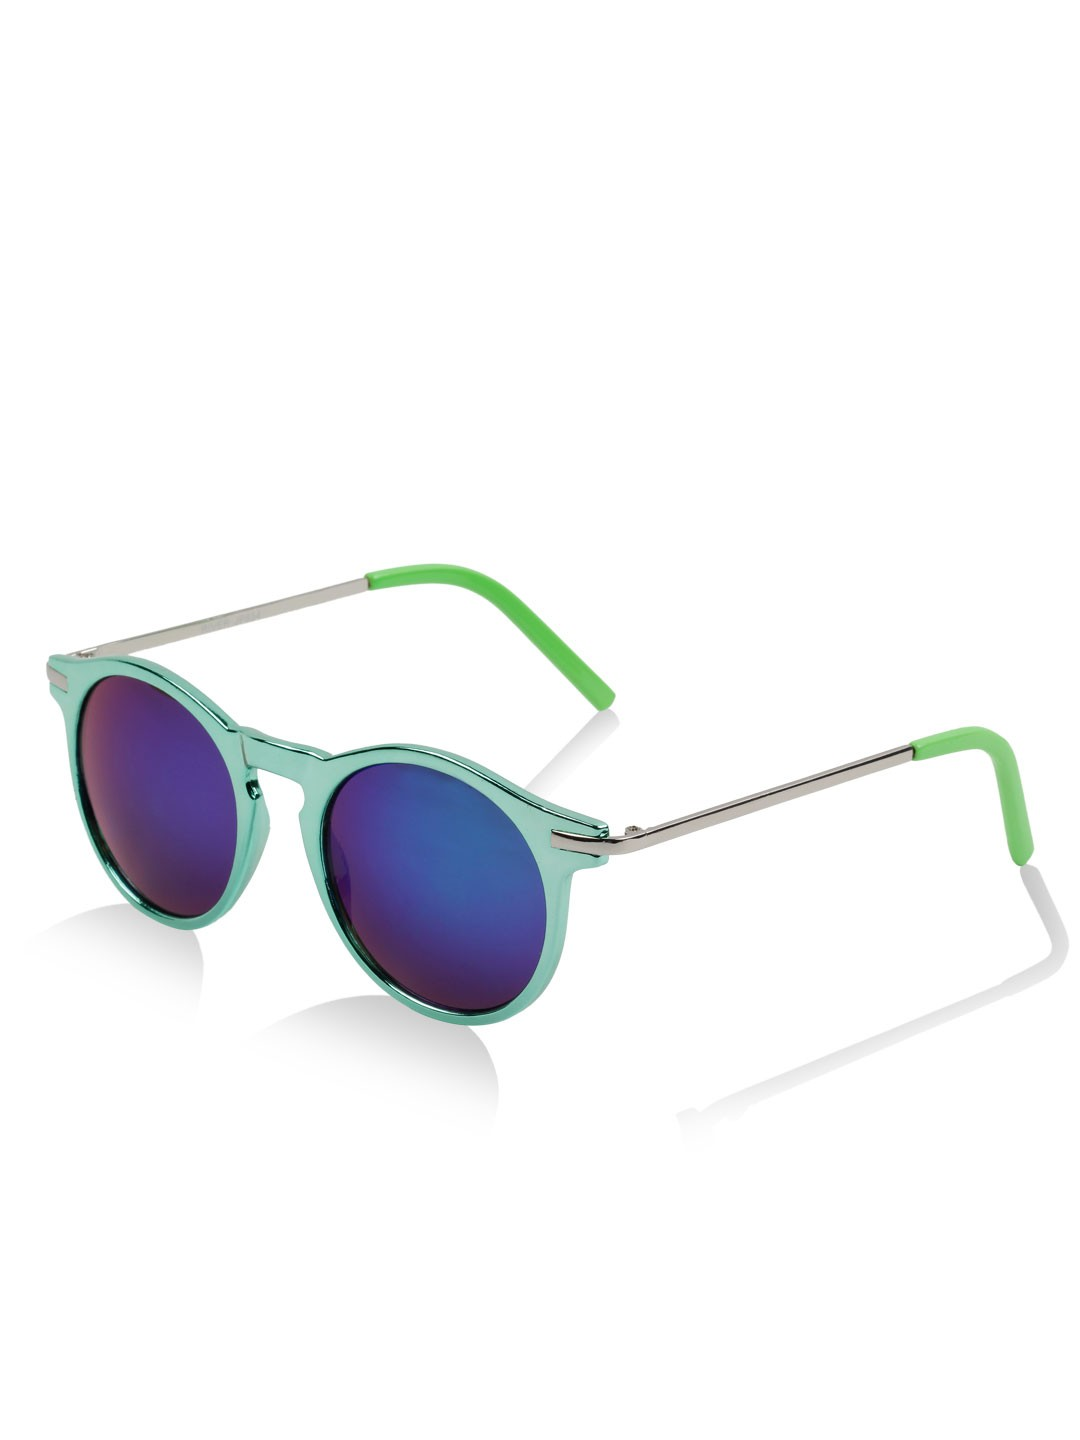 Jeepers Peepers Green River Sunglasses 1